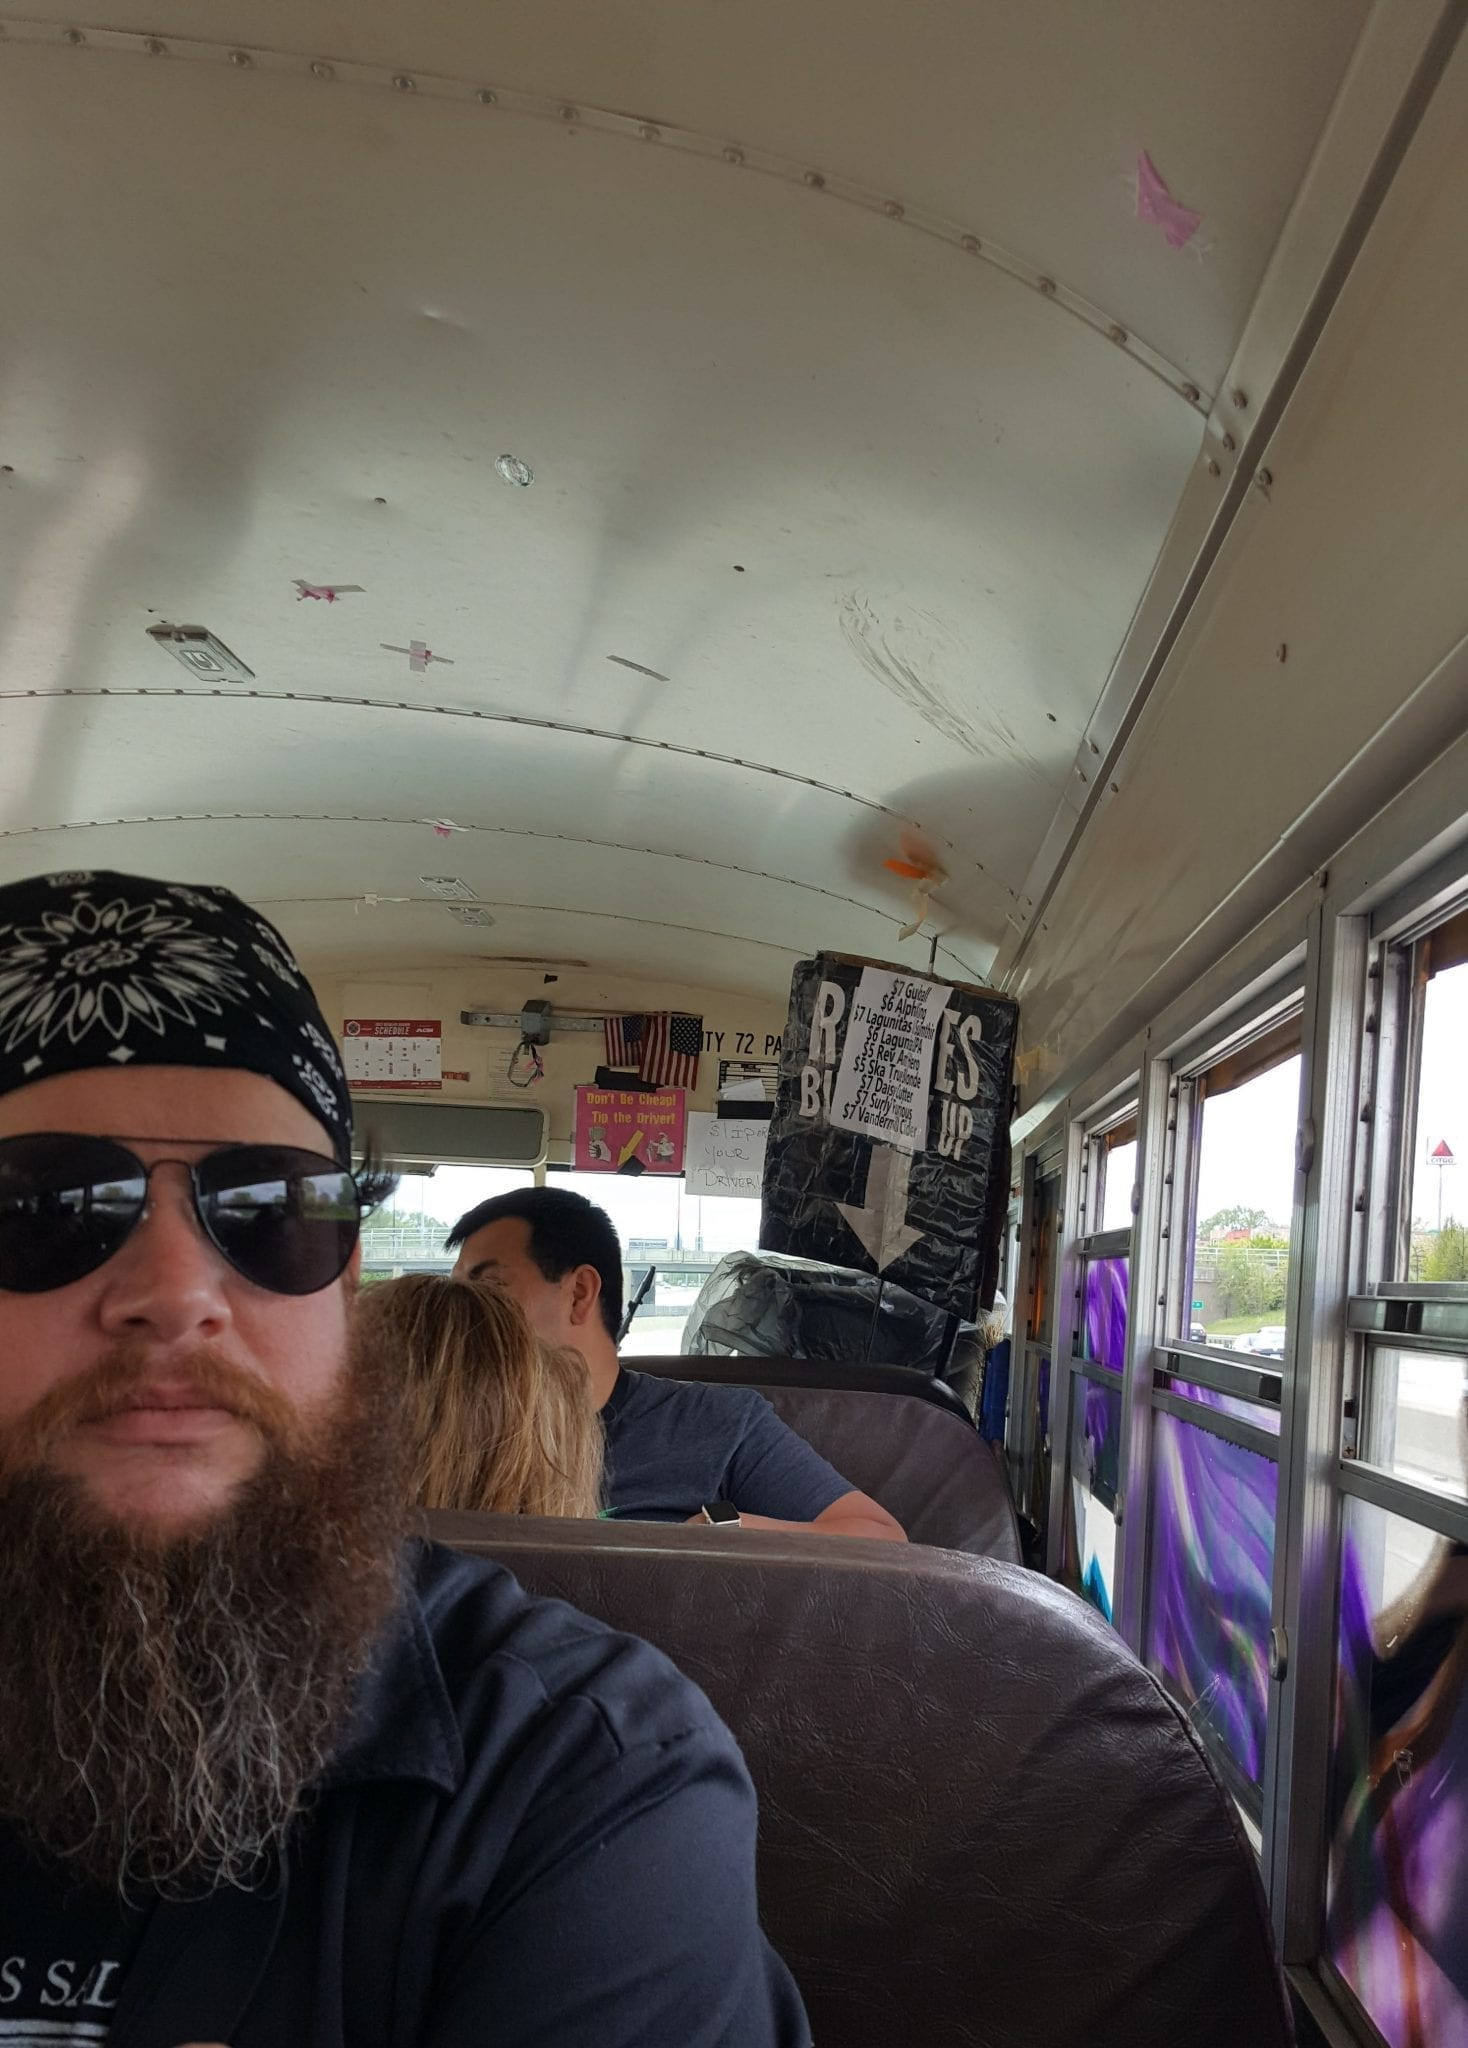 On the Reggies bus